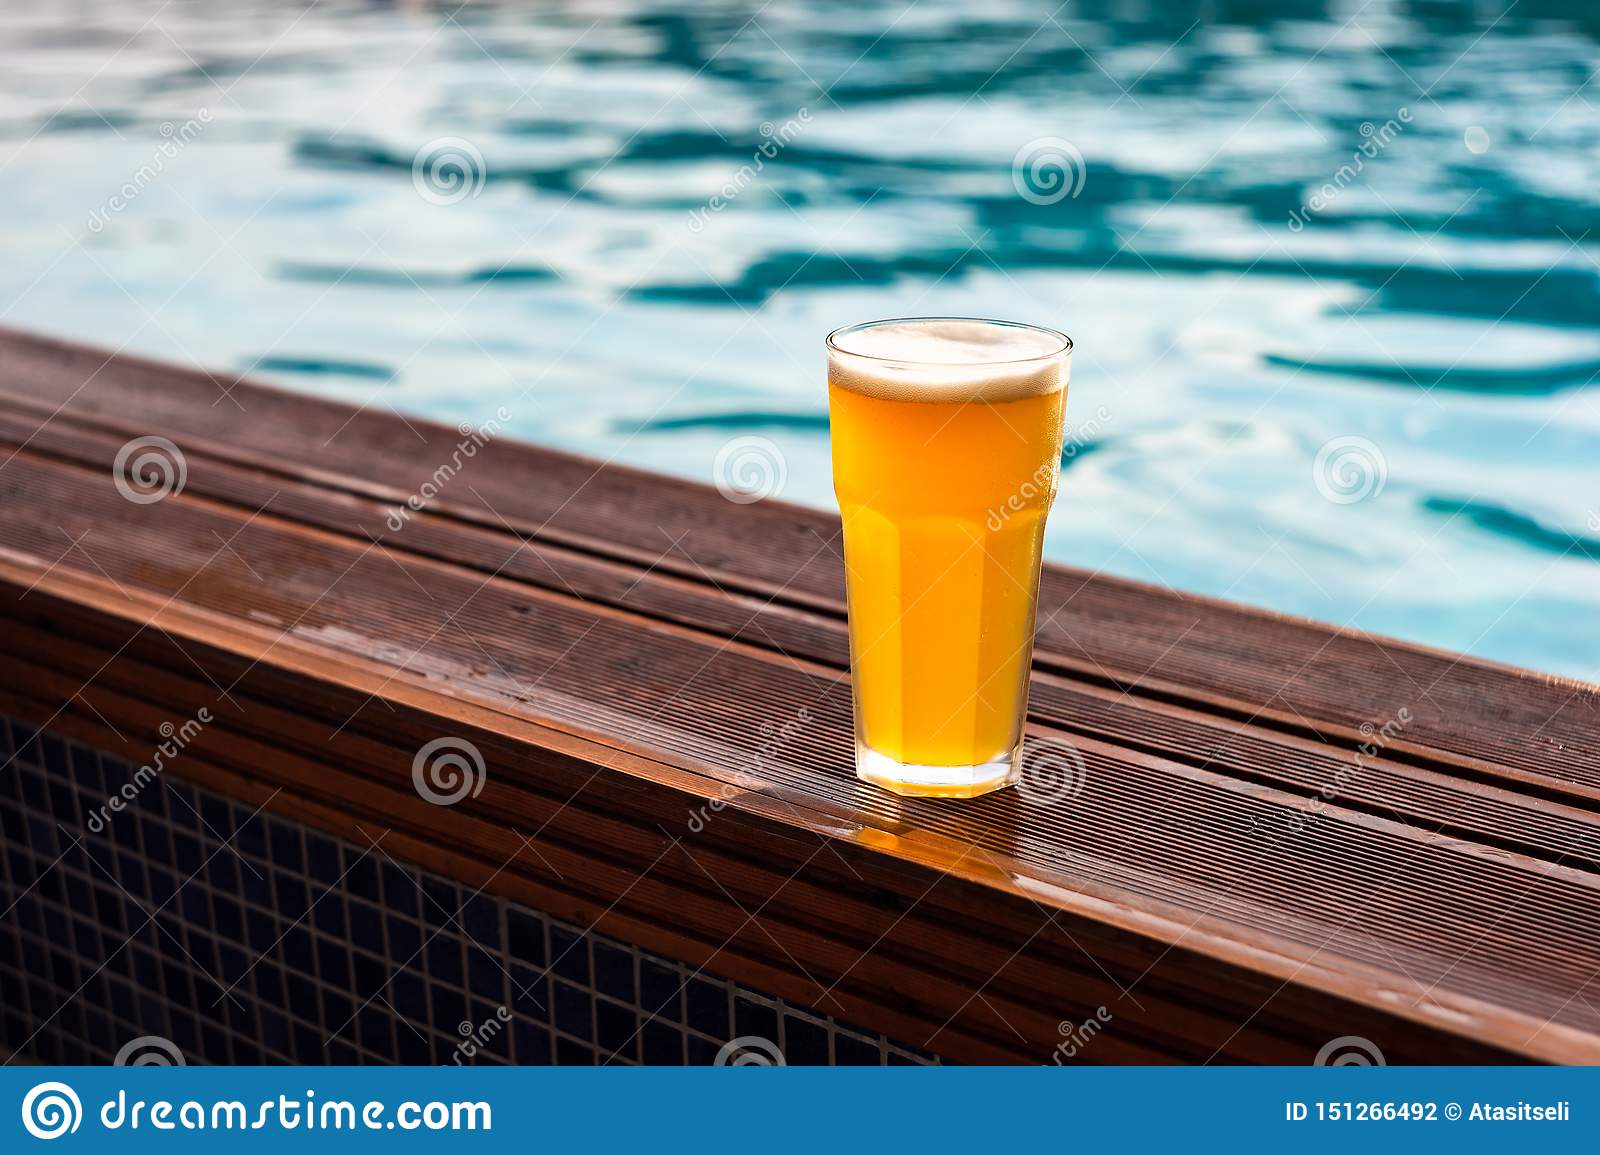 Glass of beer at the pool barside